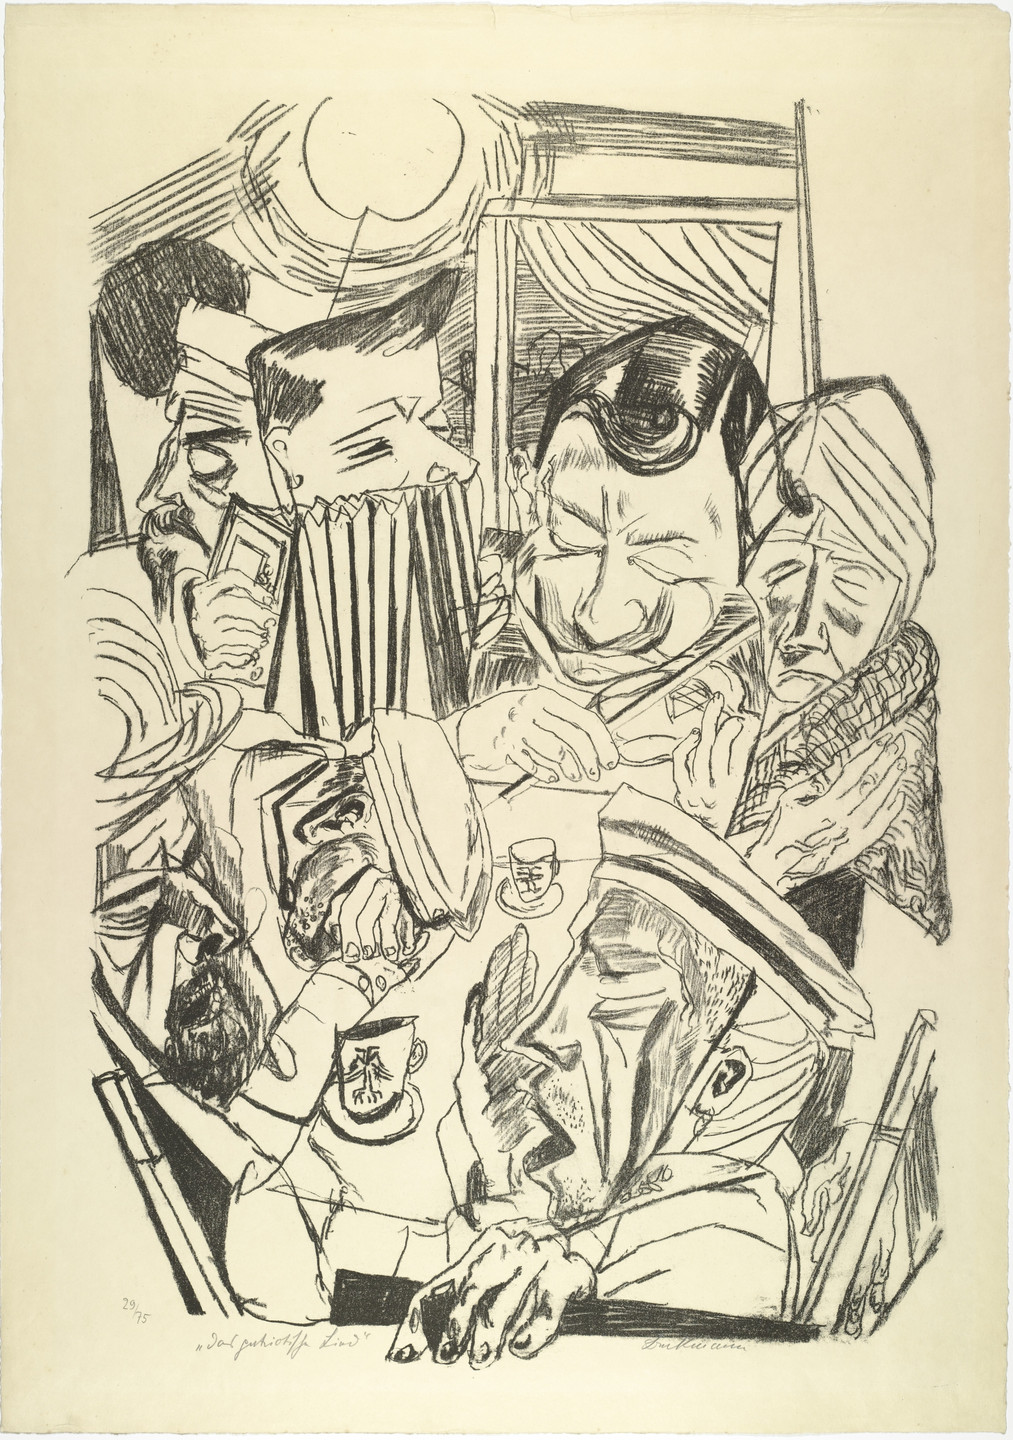 Max Beckmann. The Patriotic Song (plate 9) [Das patriotische Lied (Blatt 9)] from Hell (Die Hölle). (1919)